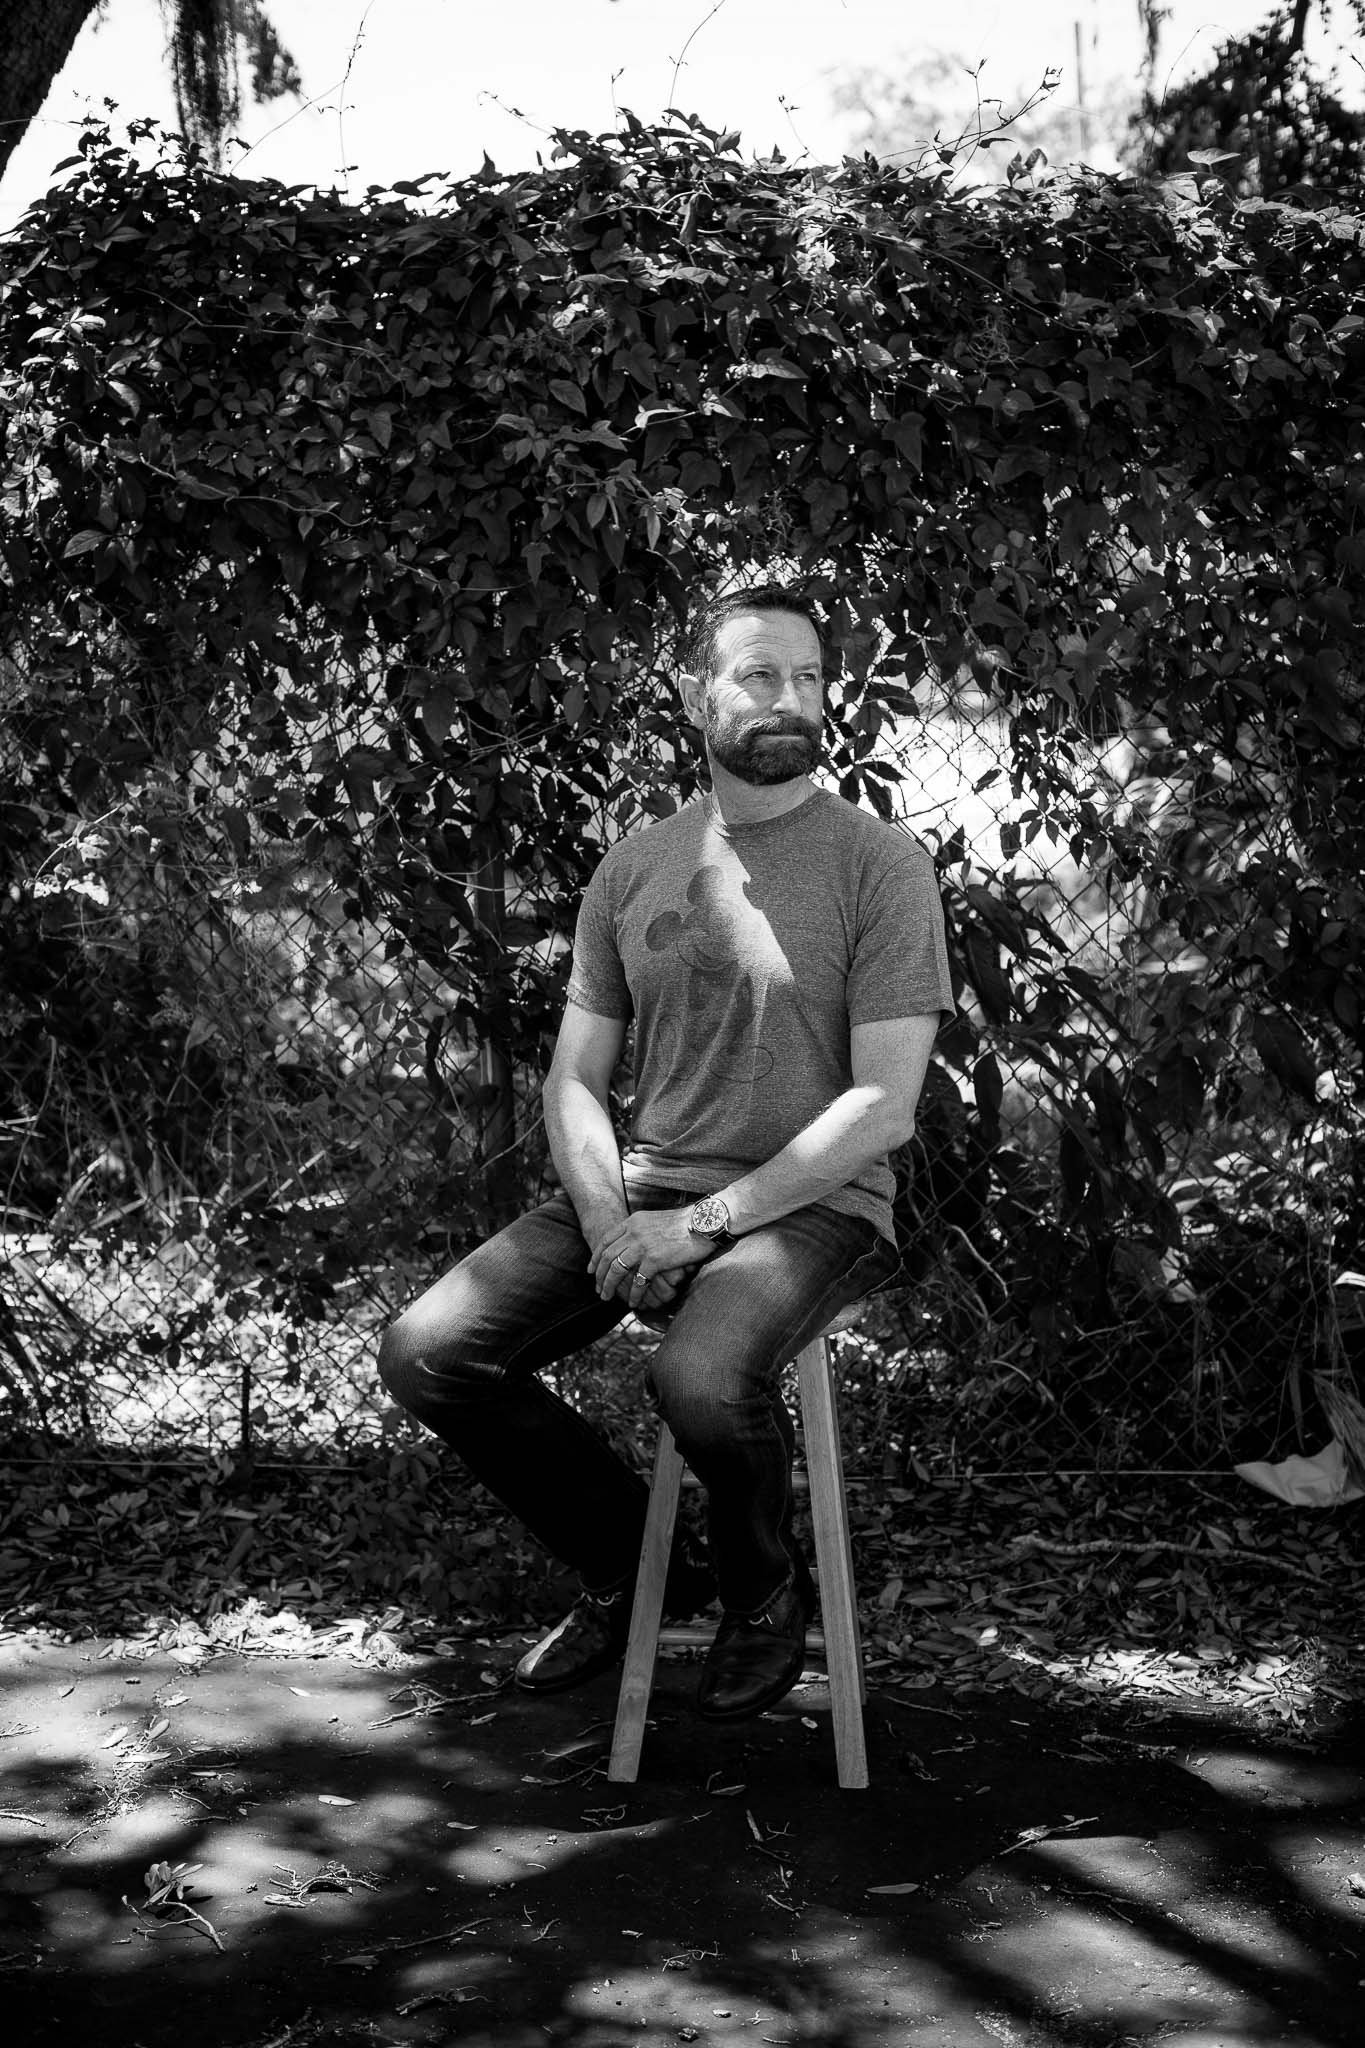 Black and white image of Duncan Wardle sitting outside on a stool in speckled light.